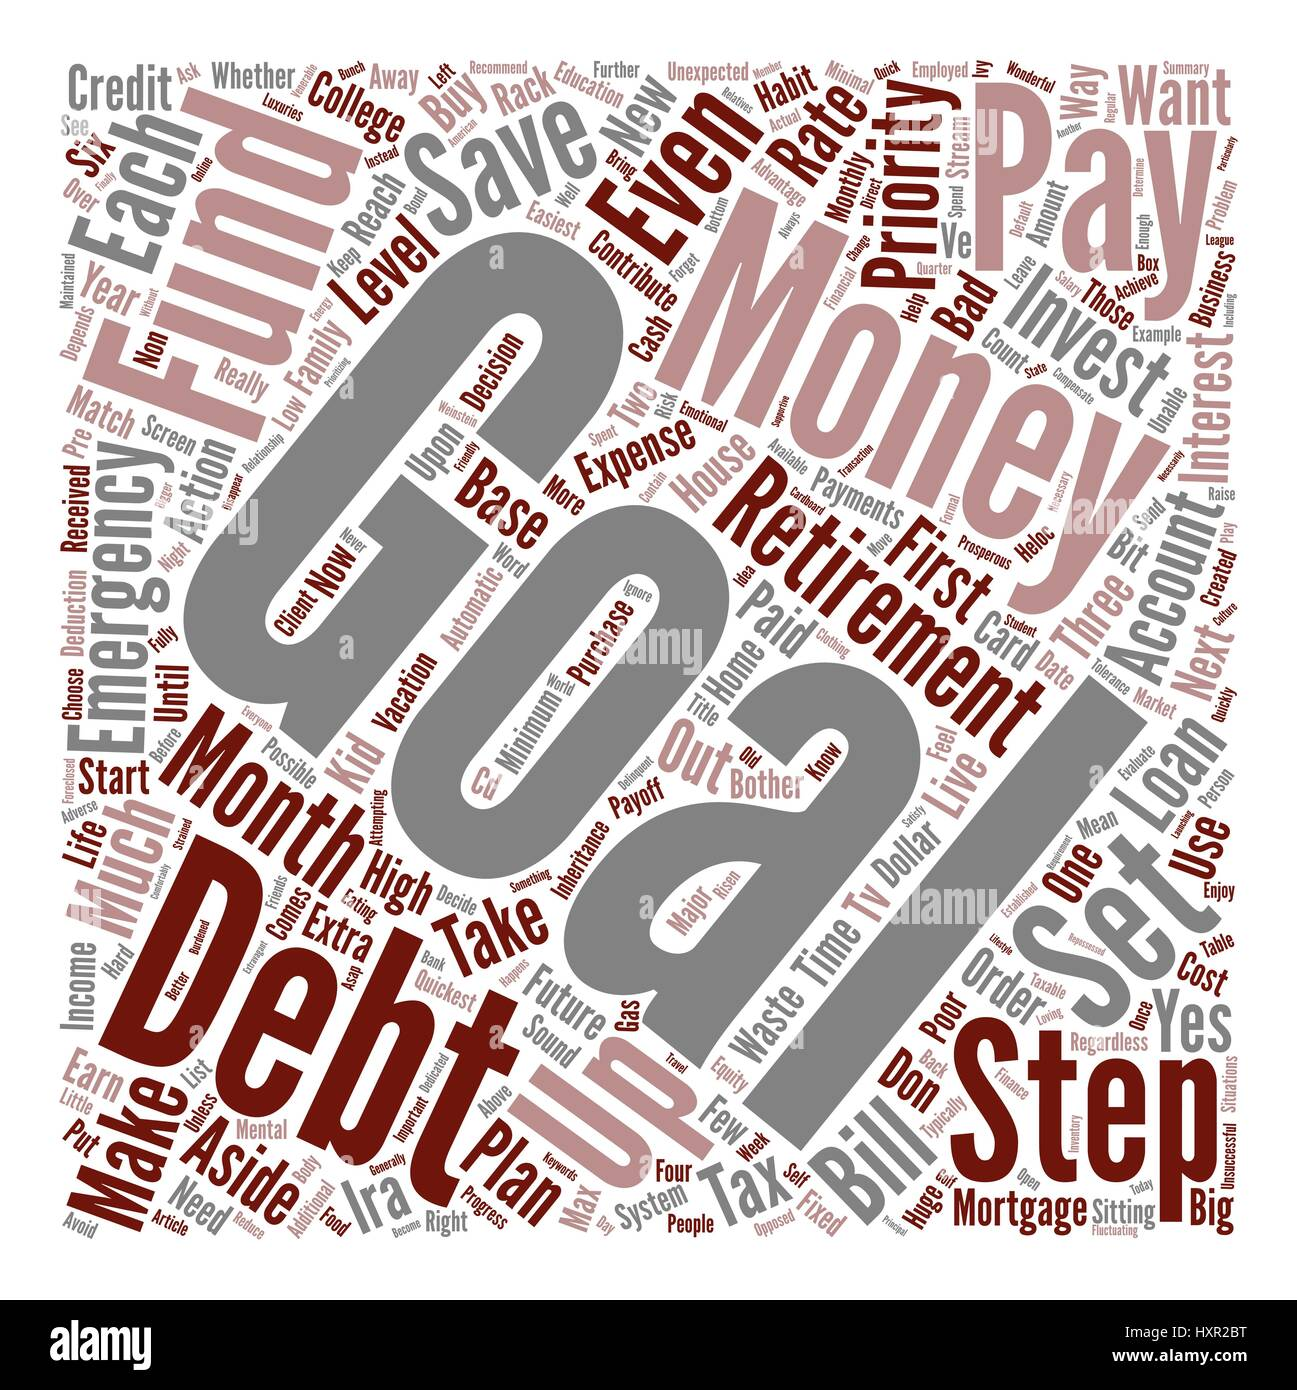 How To Use Your Hard Earned Money To Quickly Reach Your Goals text background word cloud concept - Stock Image